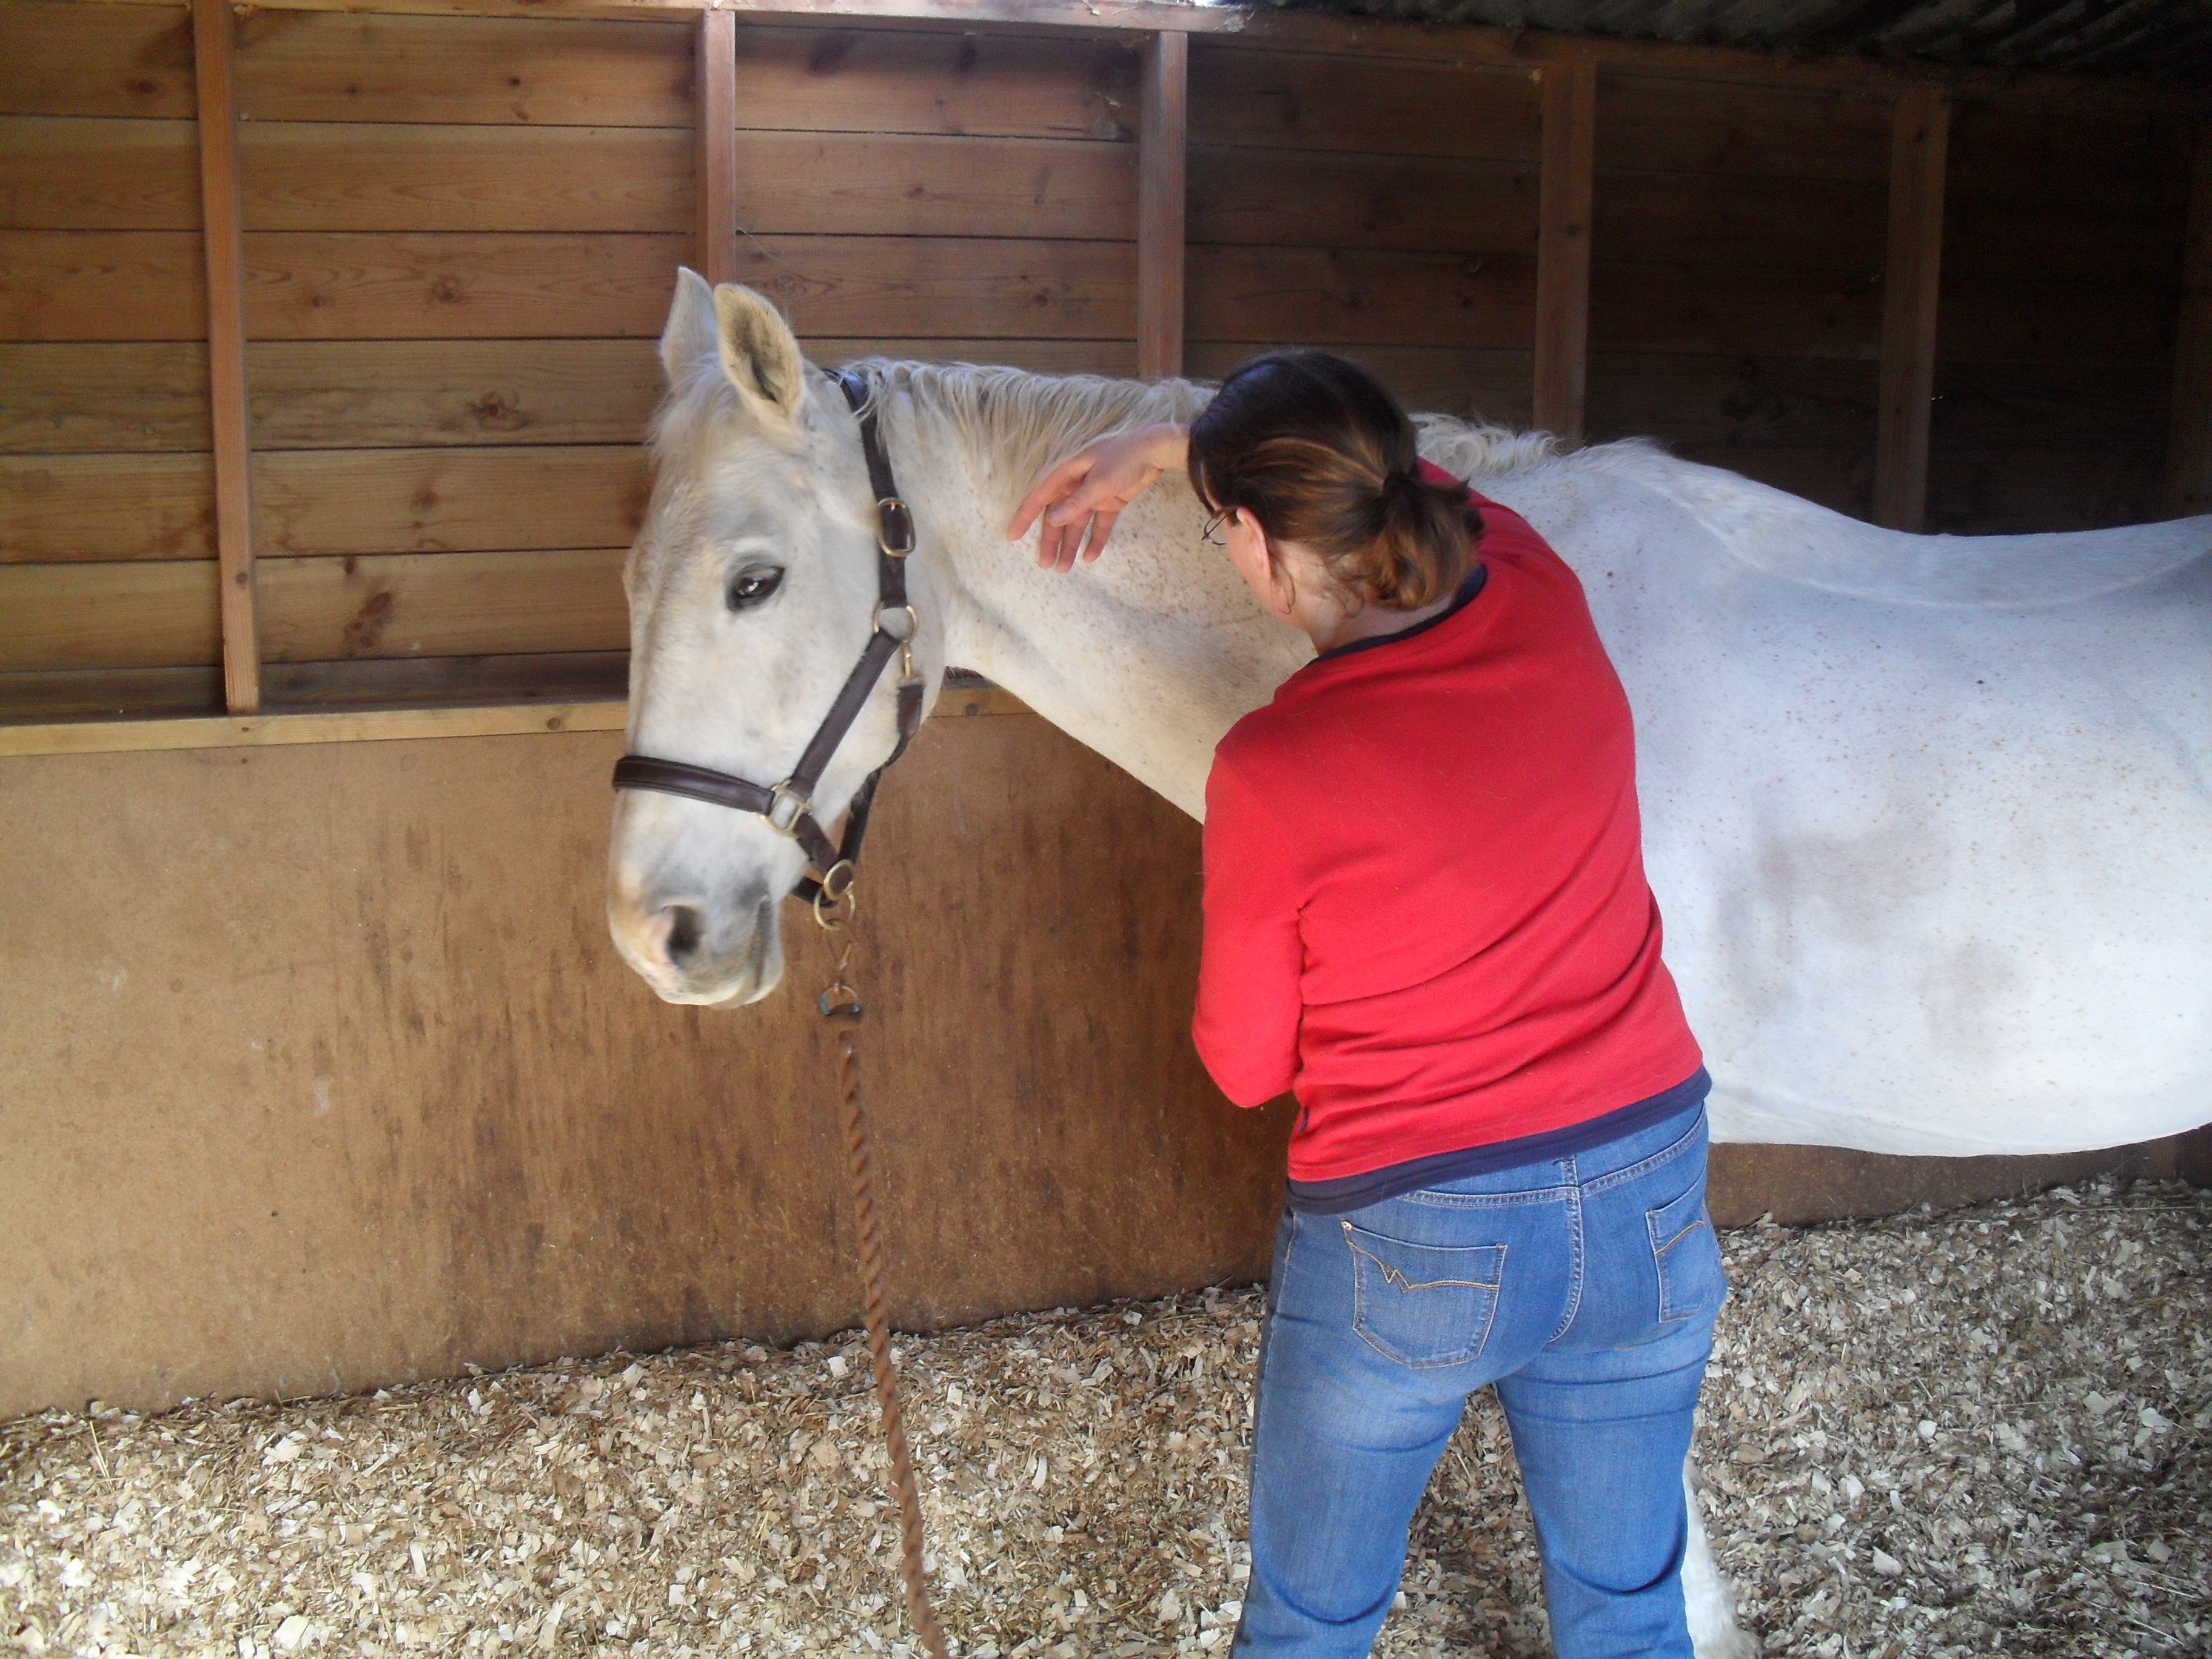 Horse equine physical therapy -  The Horse Should Be Seen By A Vet In The First Instance On Their Permission Physical Therapy Can Then Be Carried Out To Help Alleviate And Remove The